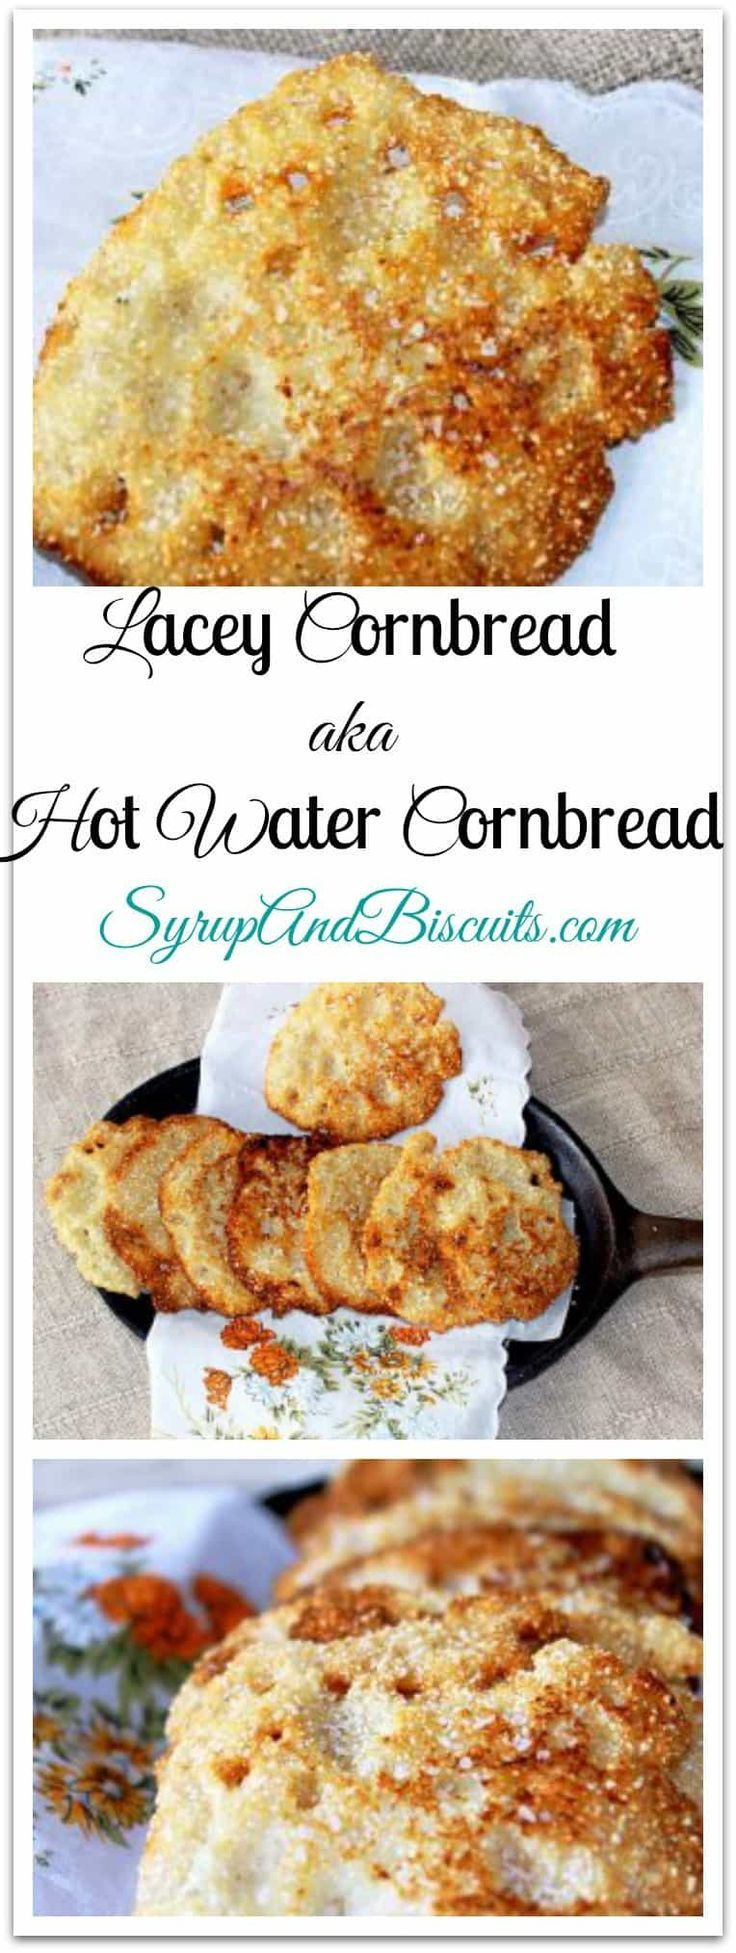 Lacey Cornbread aka Hot Water Cornbread. A rustic version of cornbread. Cornmeal, hot water, and salt cooked in hot oil and forms crispy, thin cornbread pieces. #cornbread #laceycornbread #hotwatercornbread